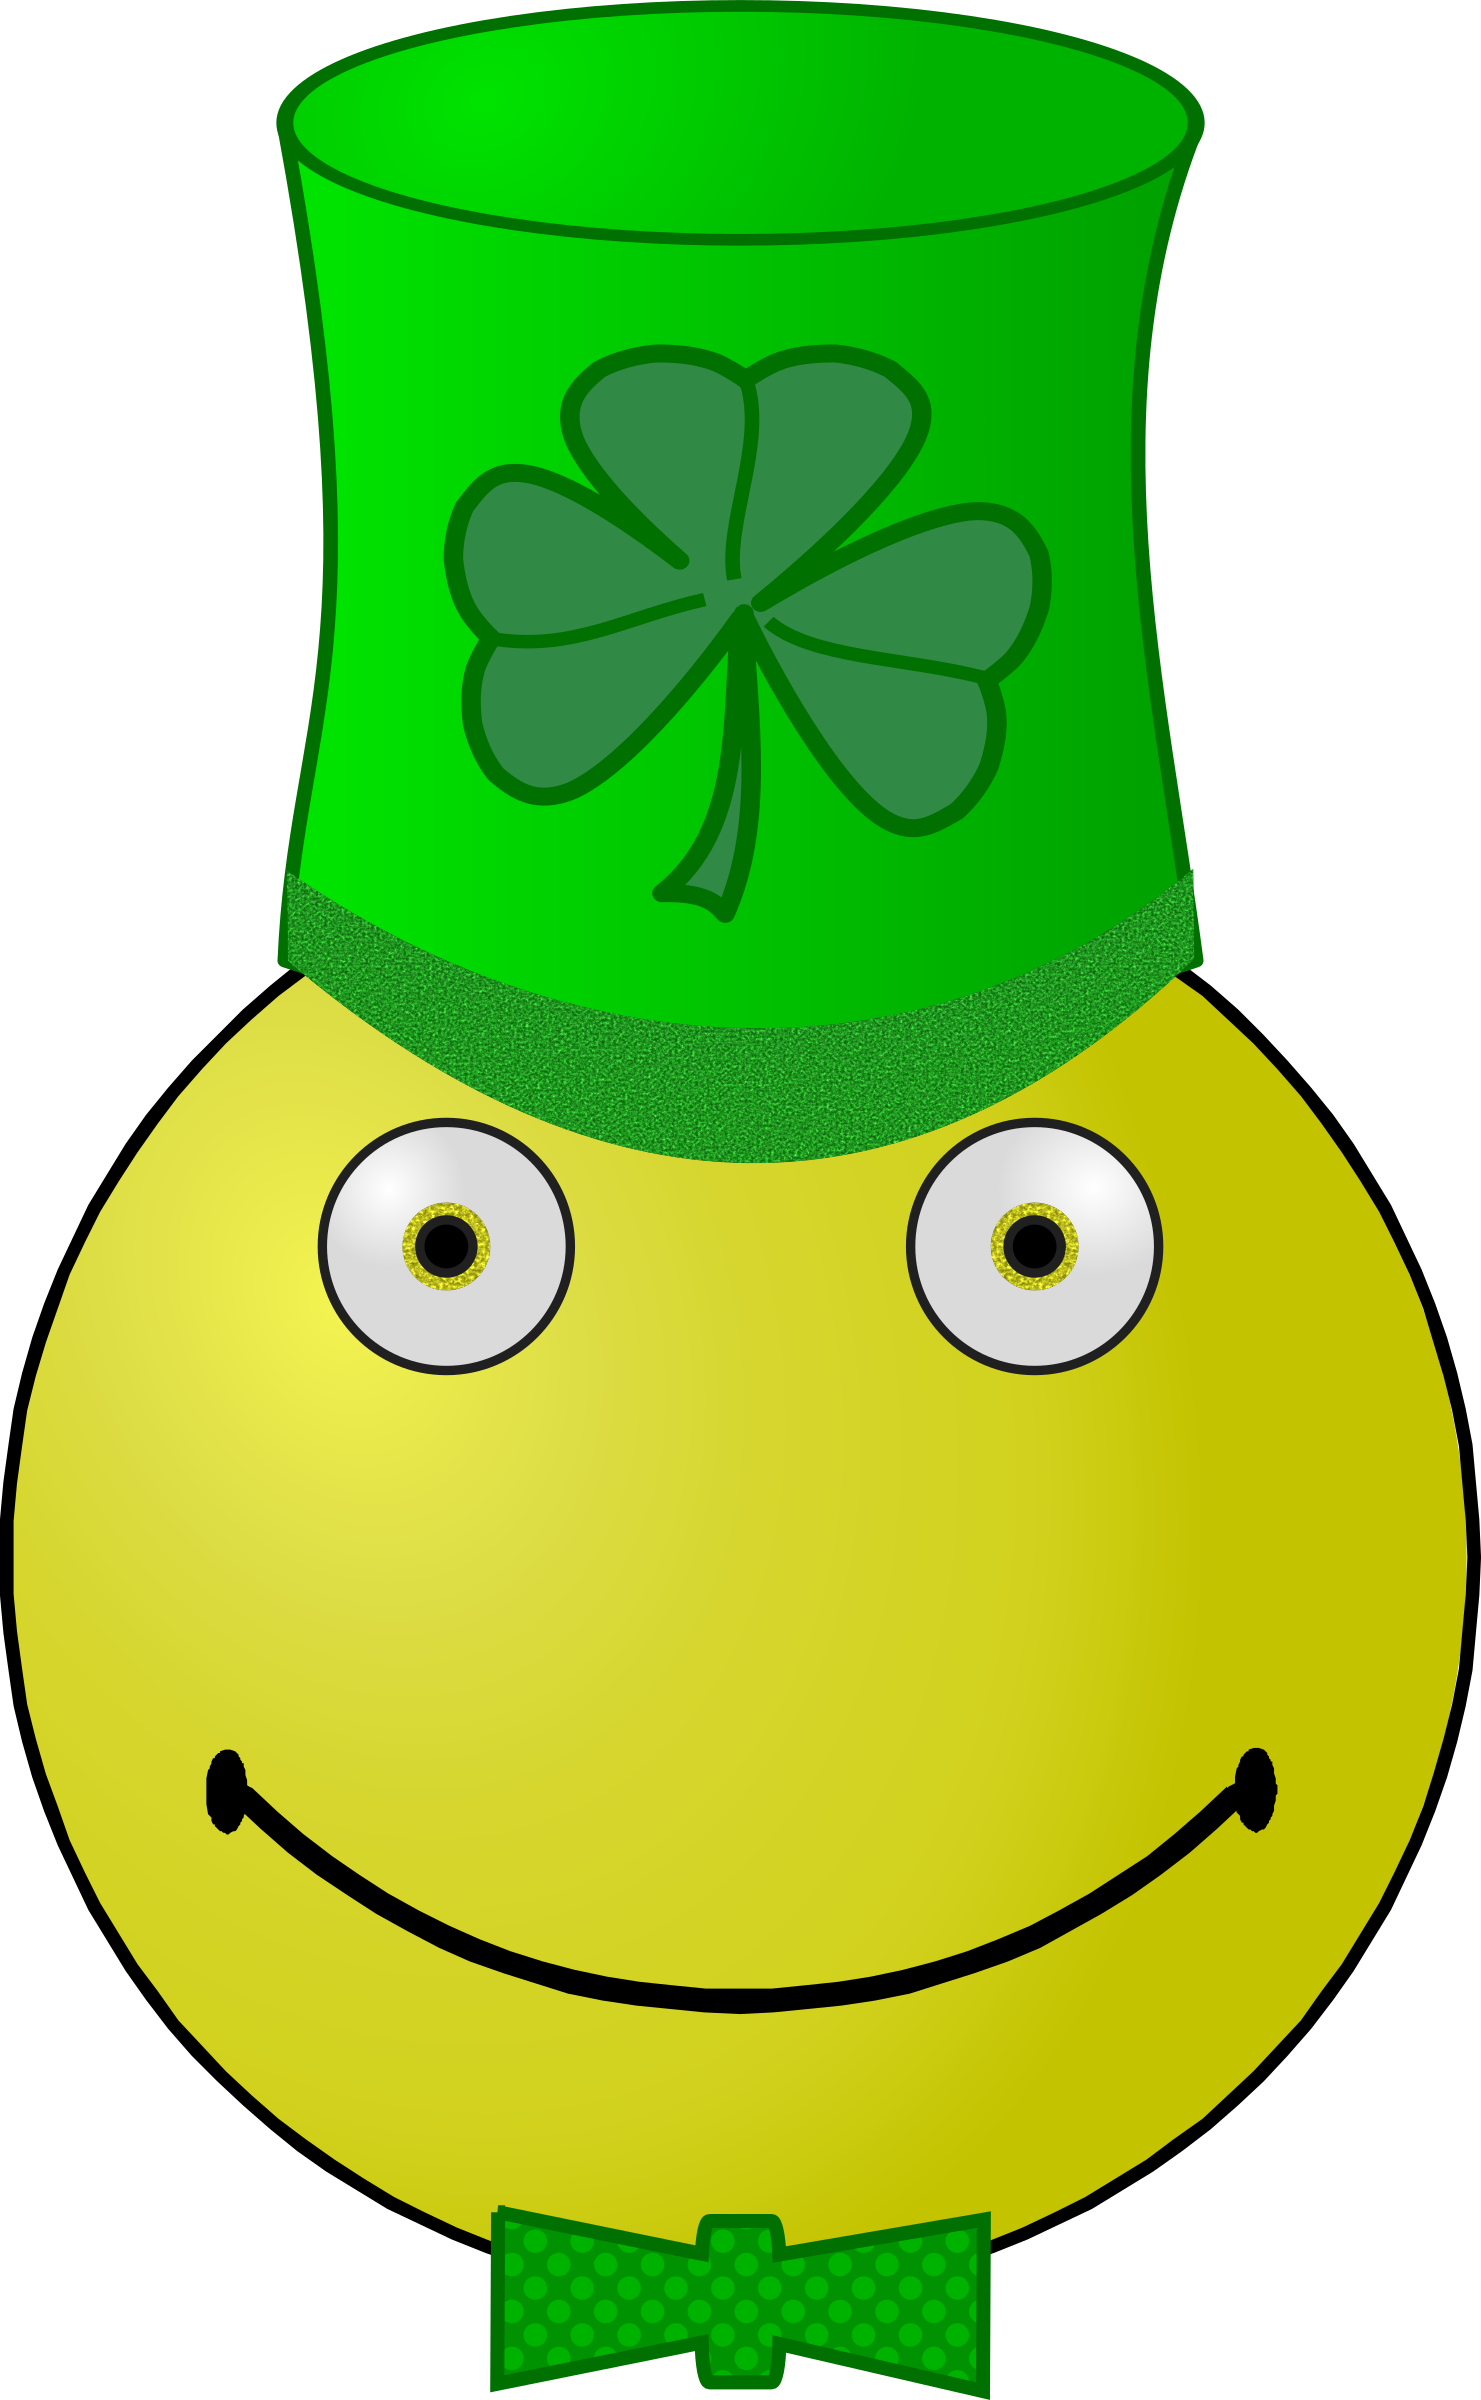 St. Patrick's Day smiley by Arvin61r58